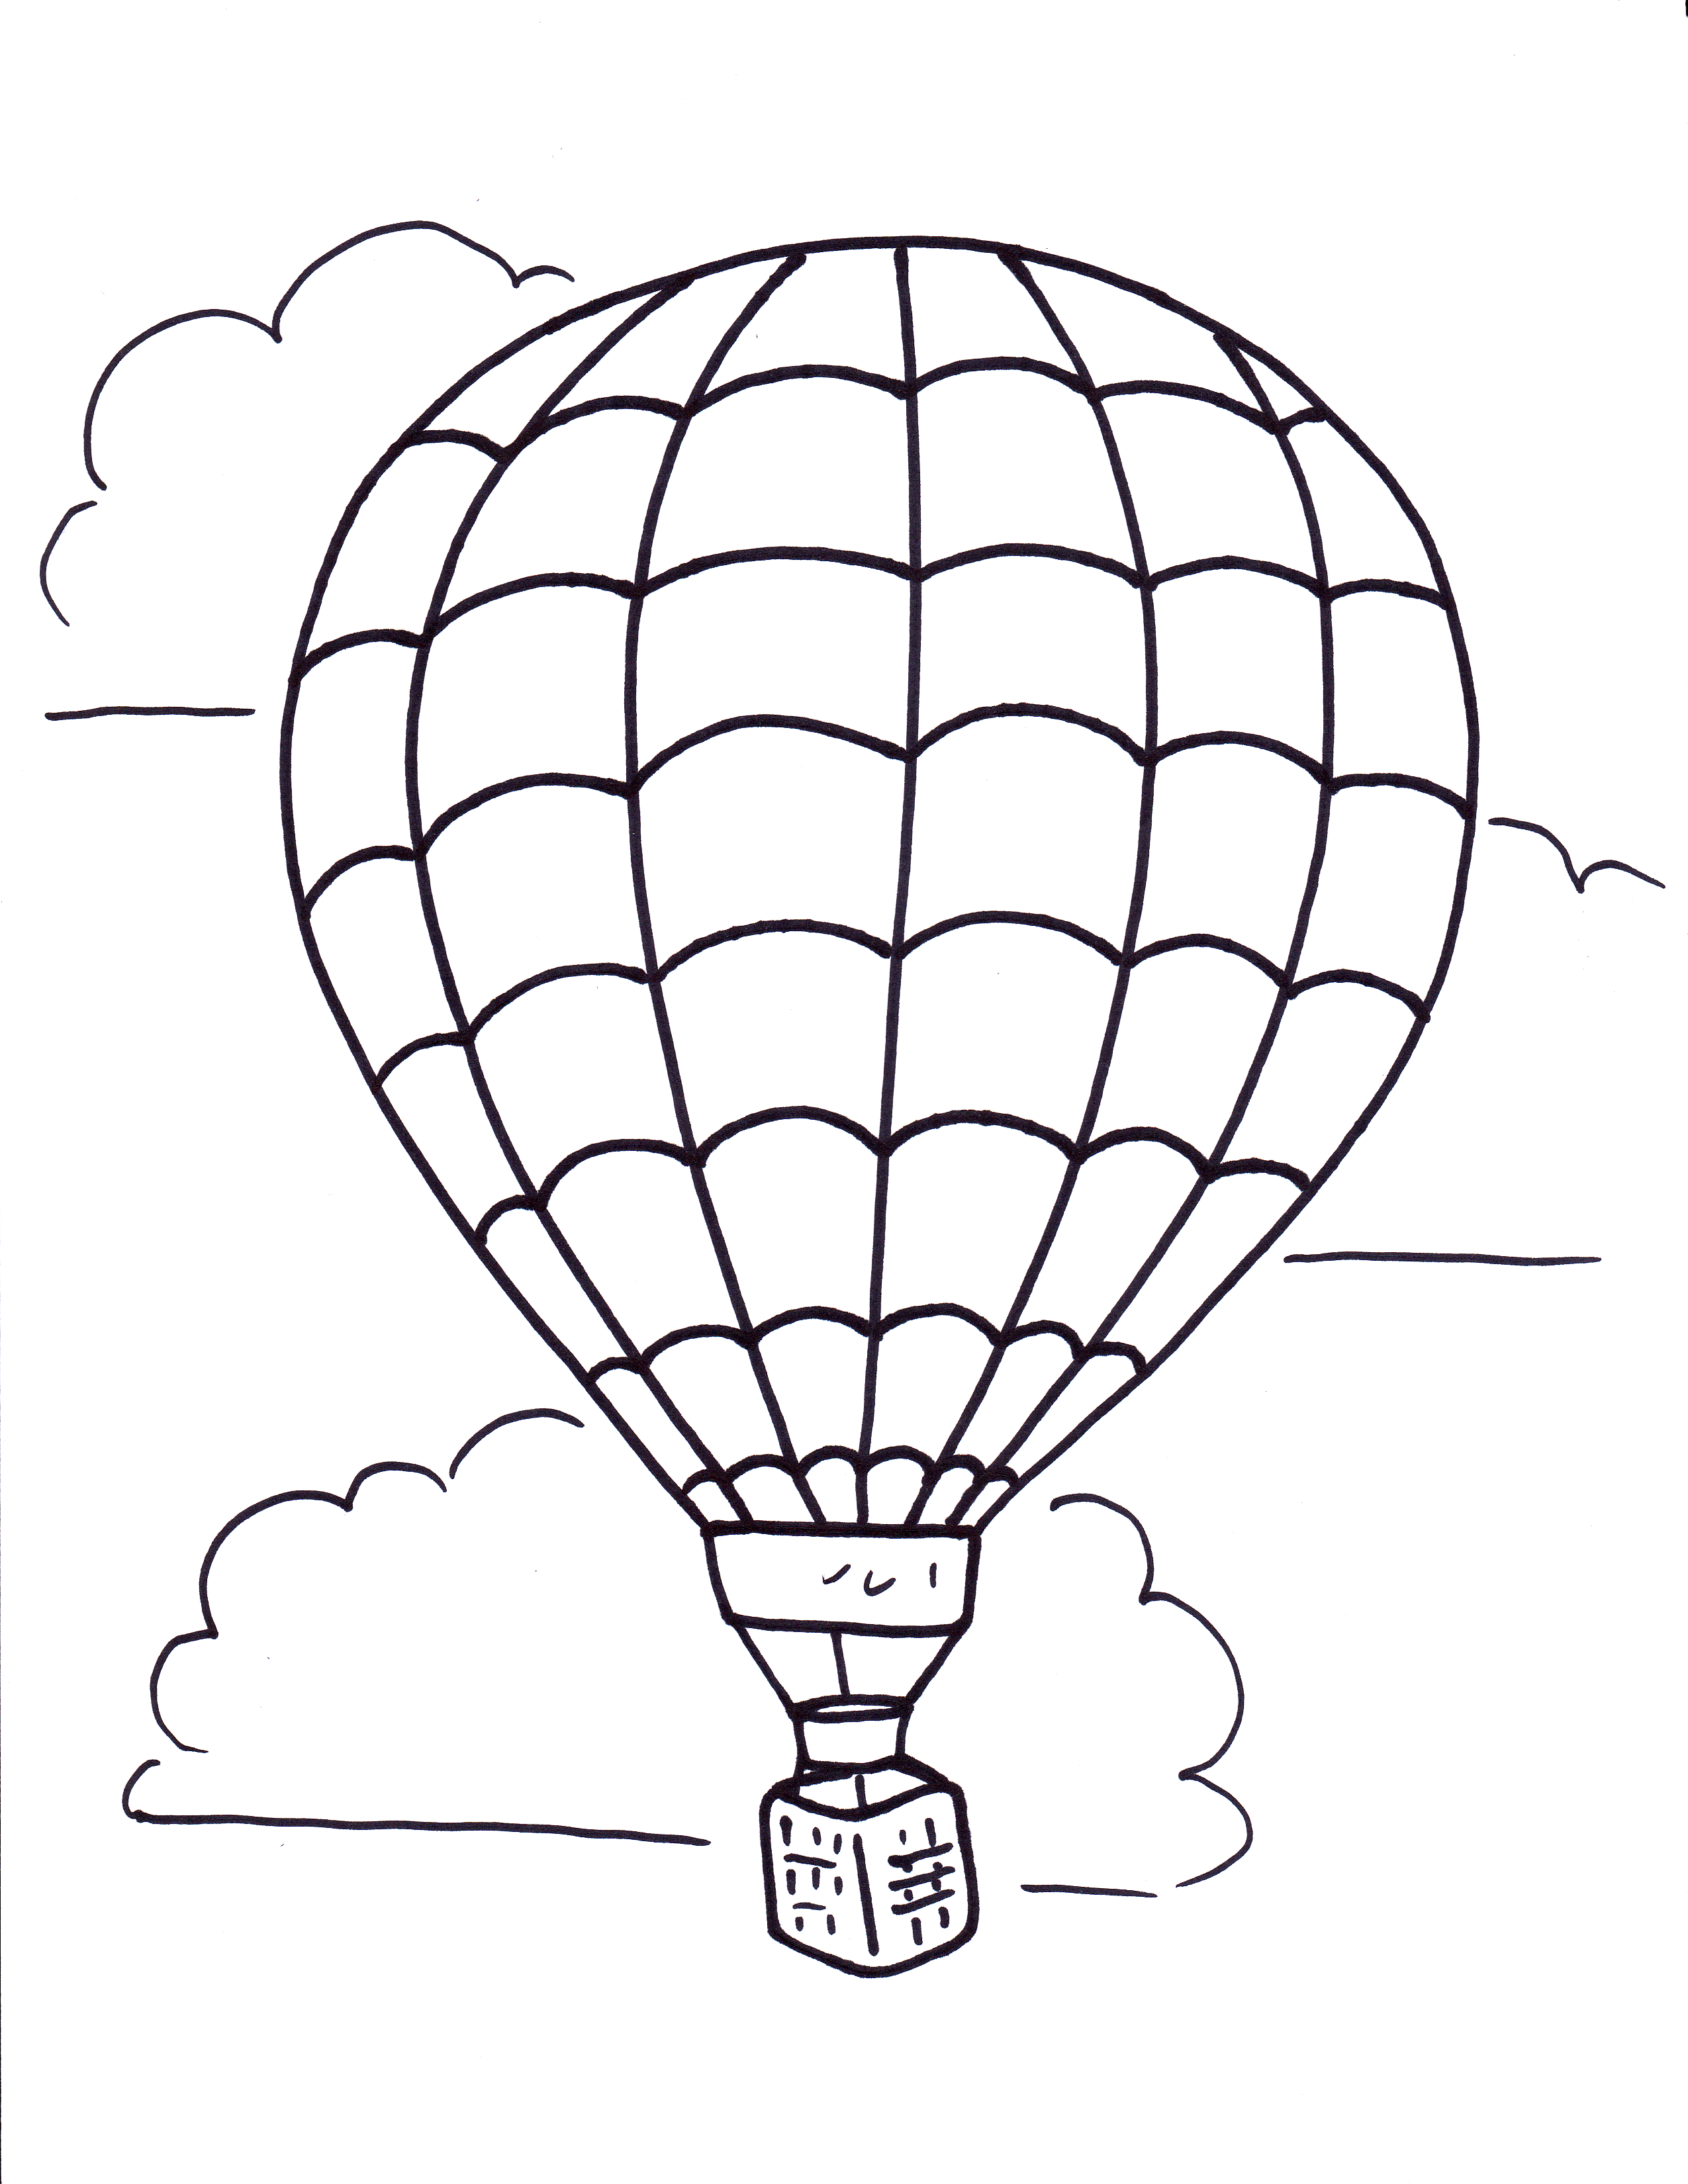 Hot Air Balloon With Netting Motif Coloring Pages For Kids Printable Balloons